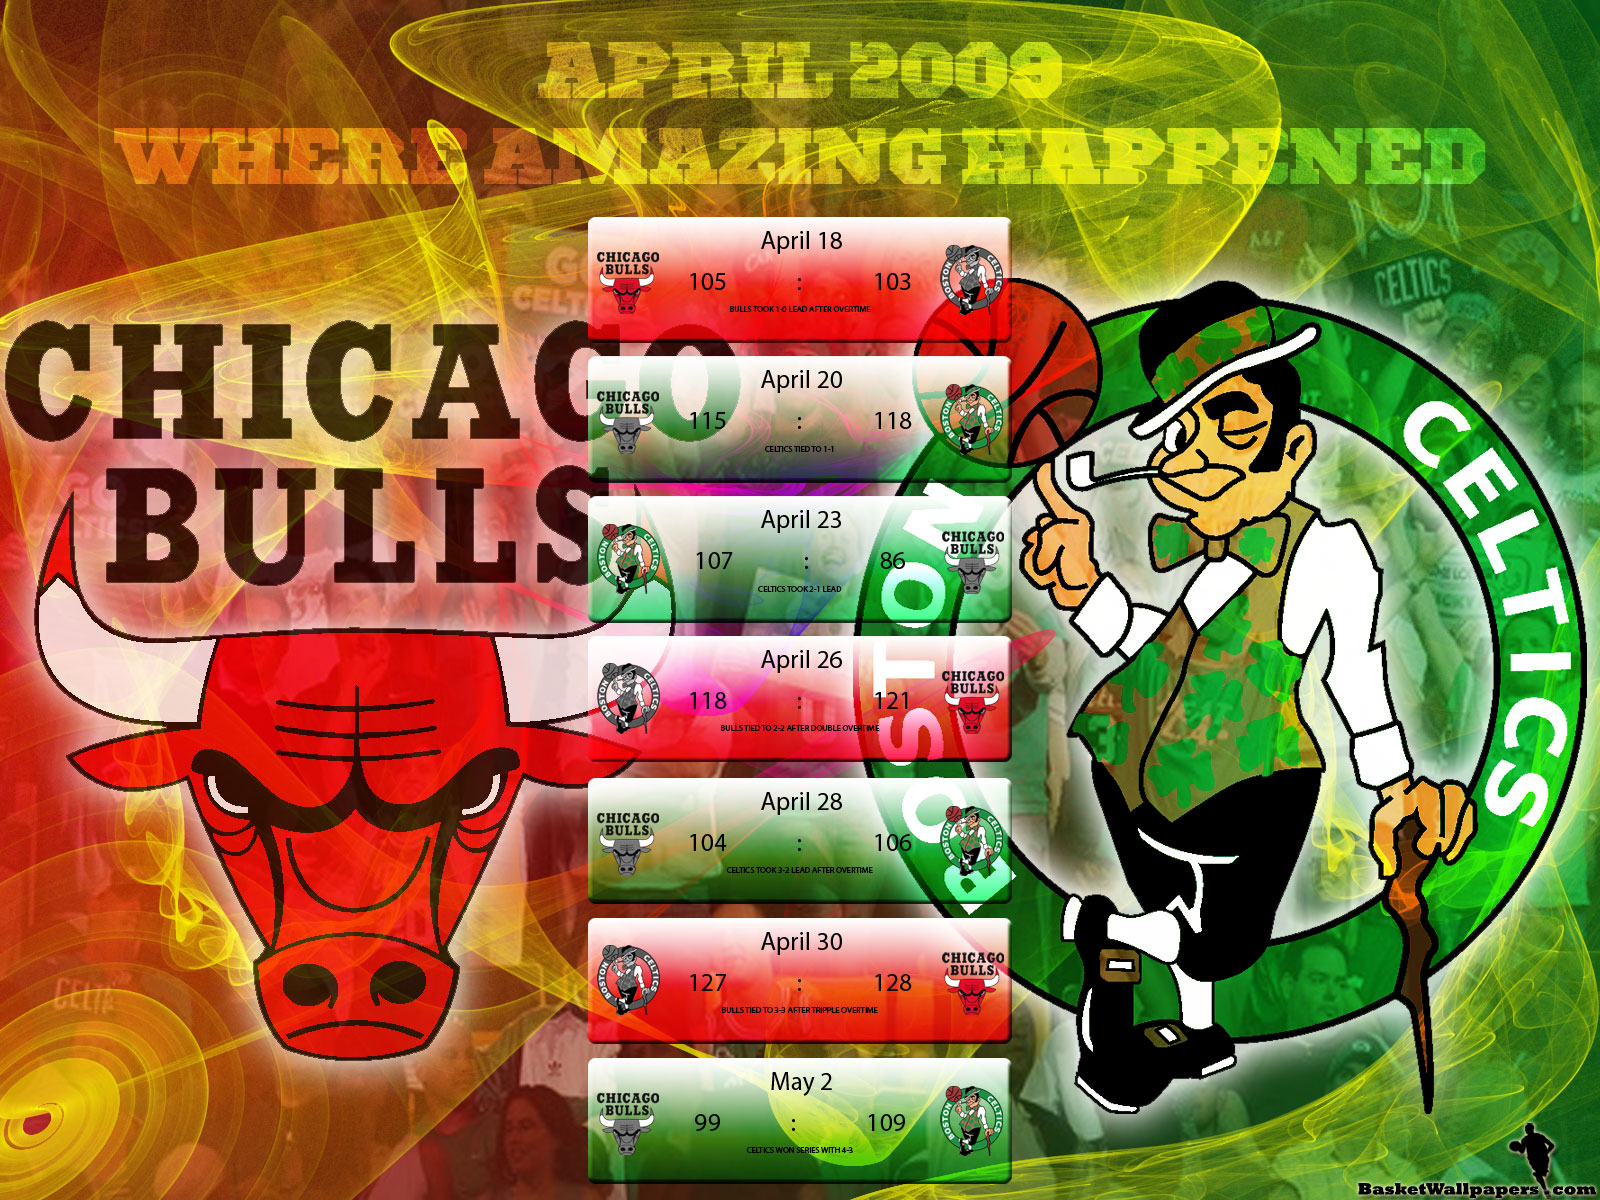 have made wallpaper some of you requested after Bulls - Celtics 2009 ...